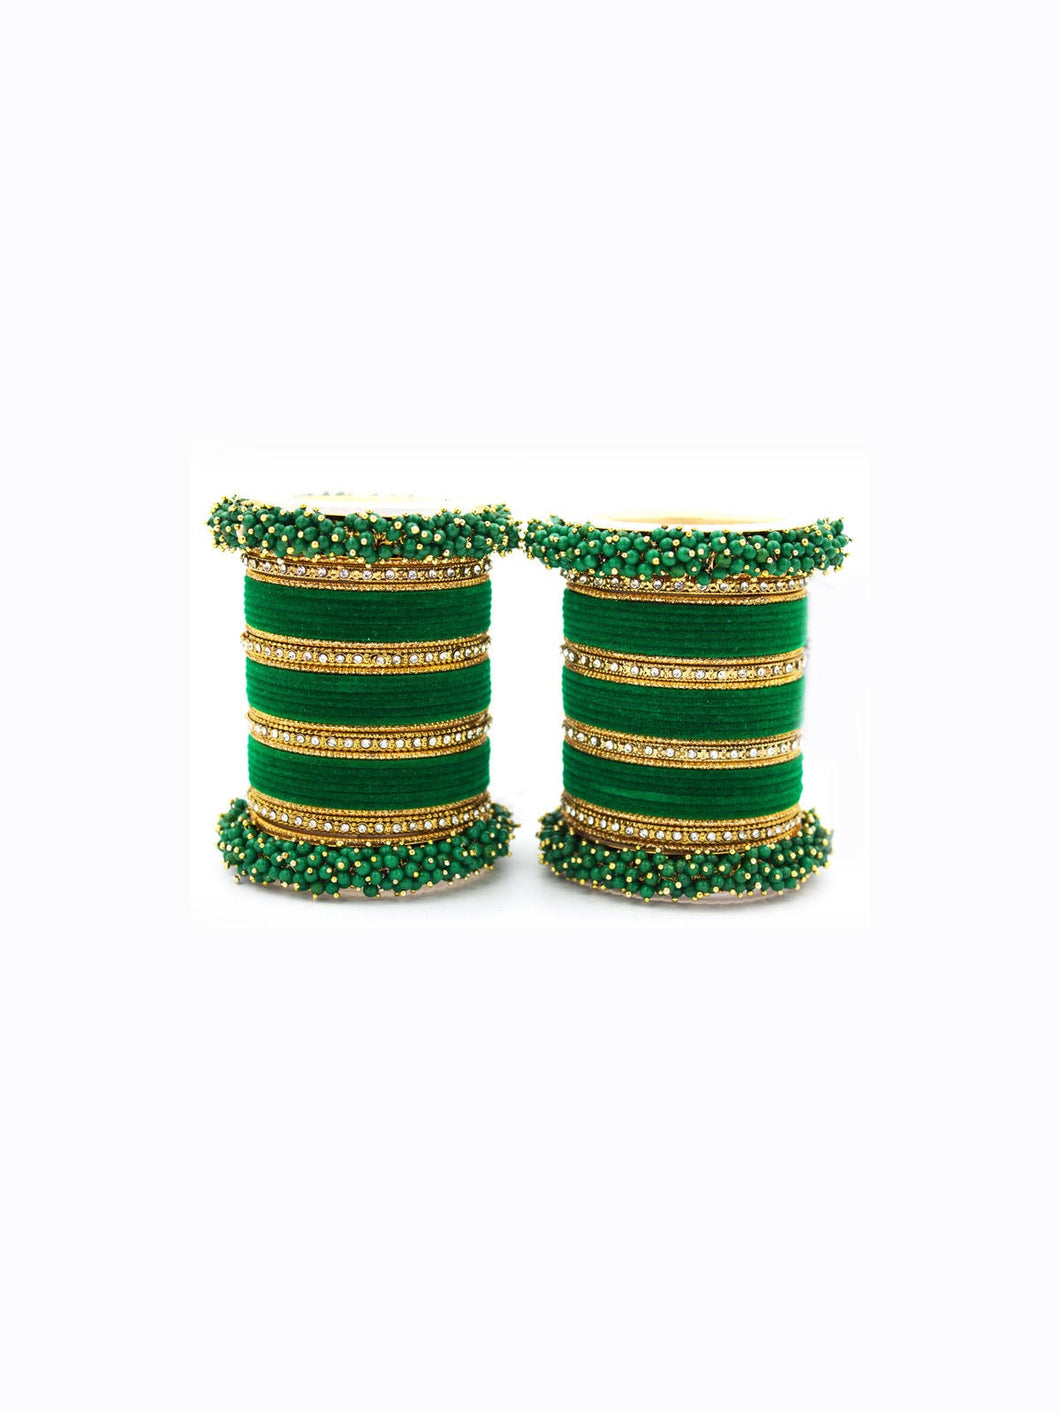 Green Bangle Set with Beaded Work